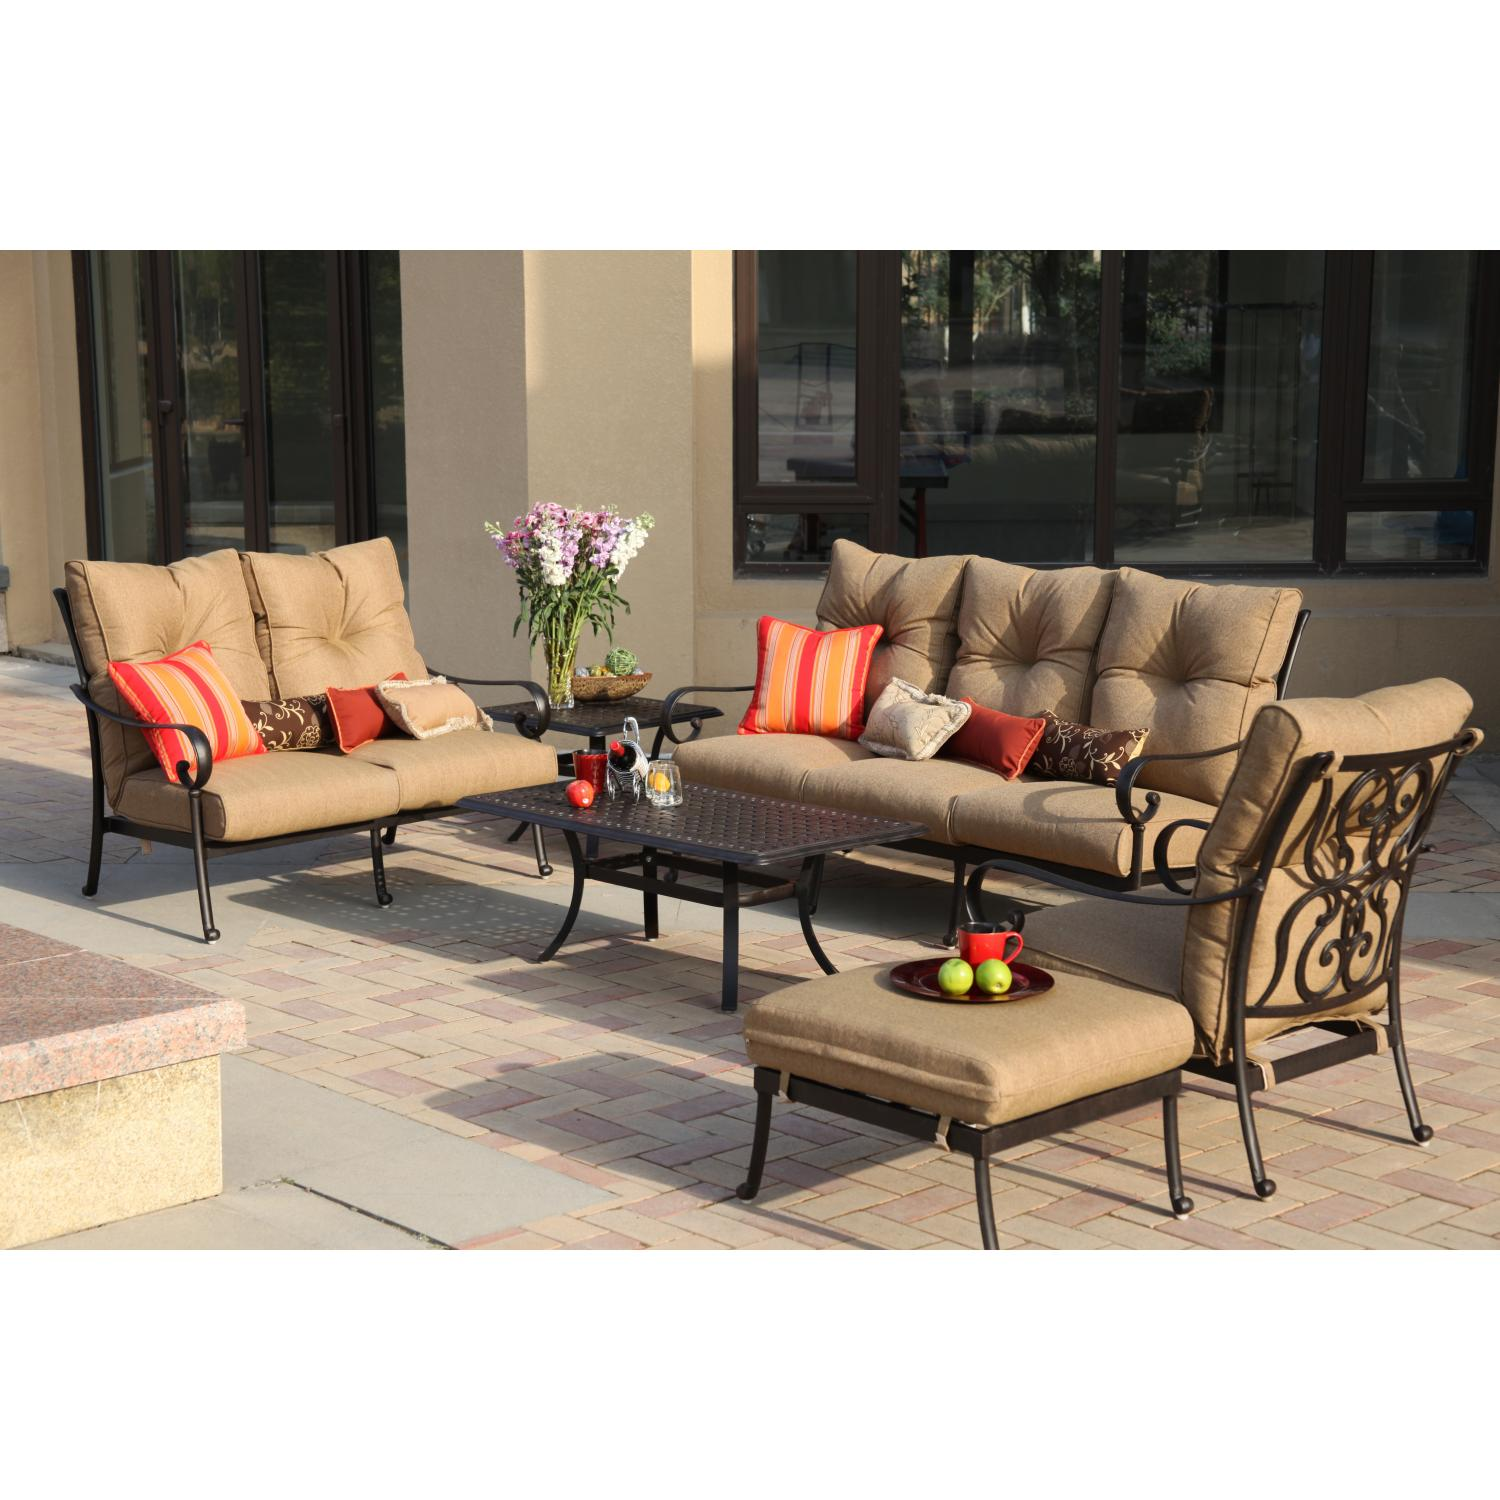 Darlee Santa Anita 6 Piece Aluminum Patio Conversation Seating Set